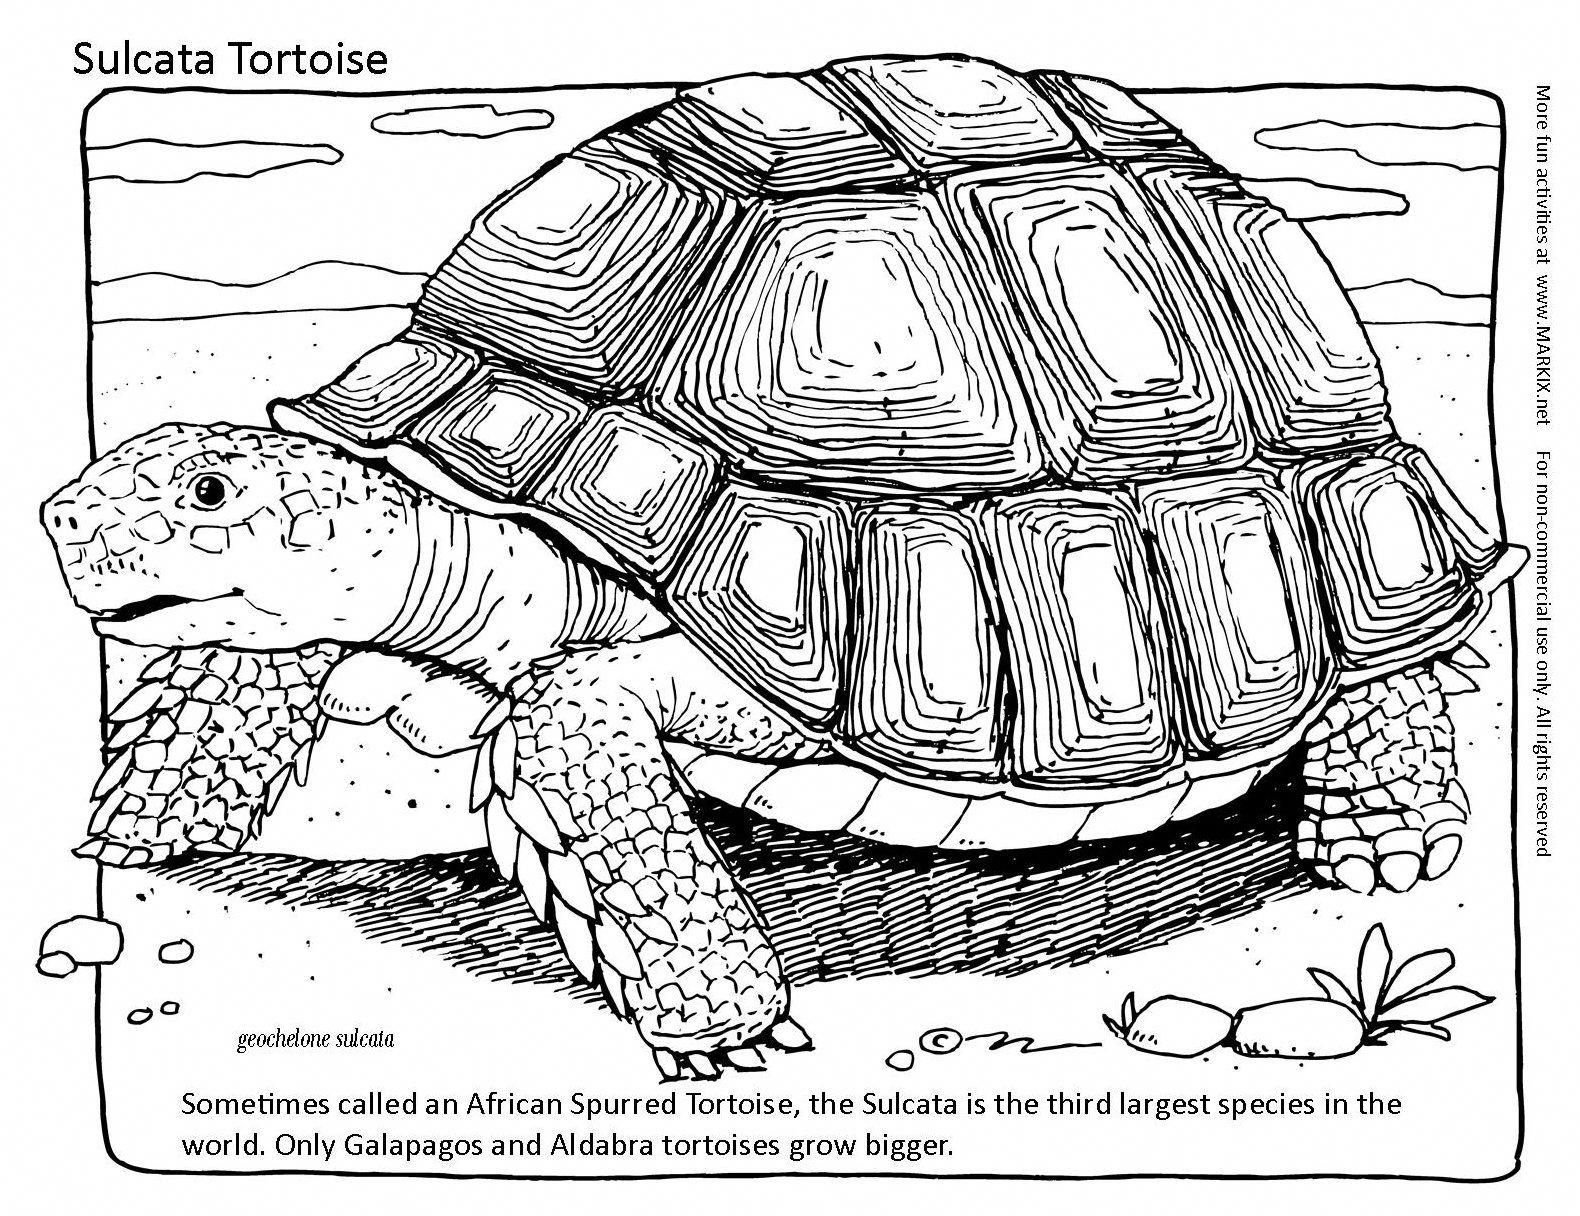 Tortoise Coloring Page Sometimes Called An African Spurred Tortoise The Sulcata Is The Third Largest Species In Tortoises Desert Tortoise Galapagos Tortoise